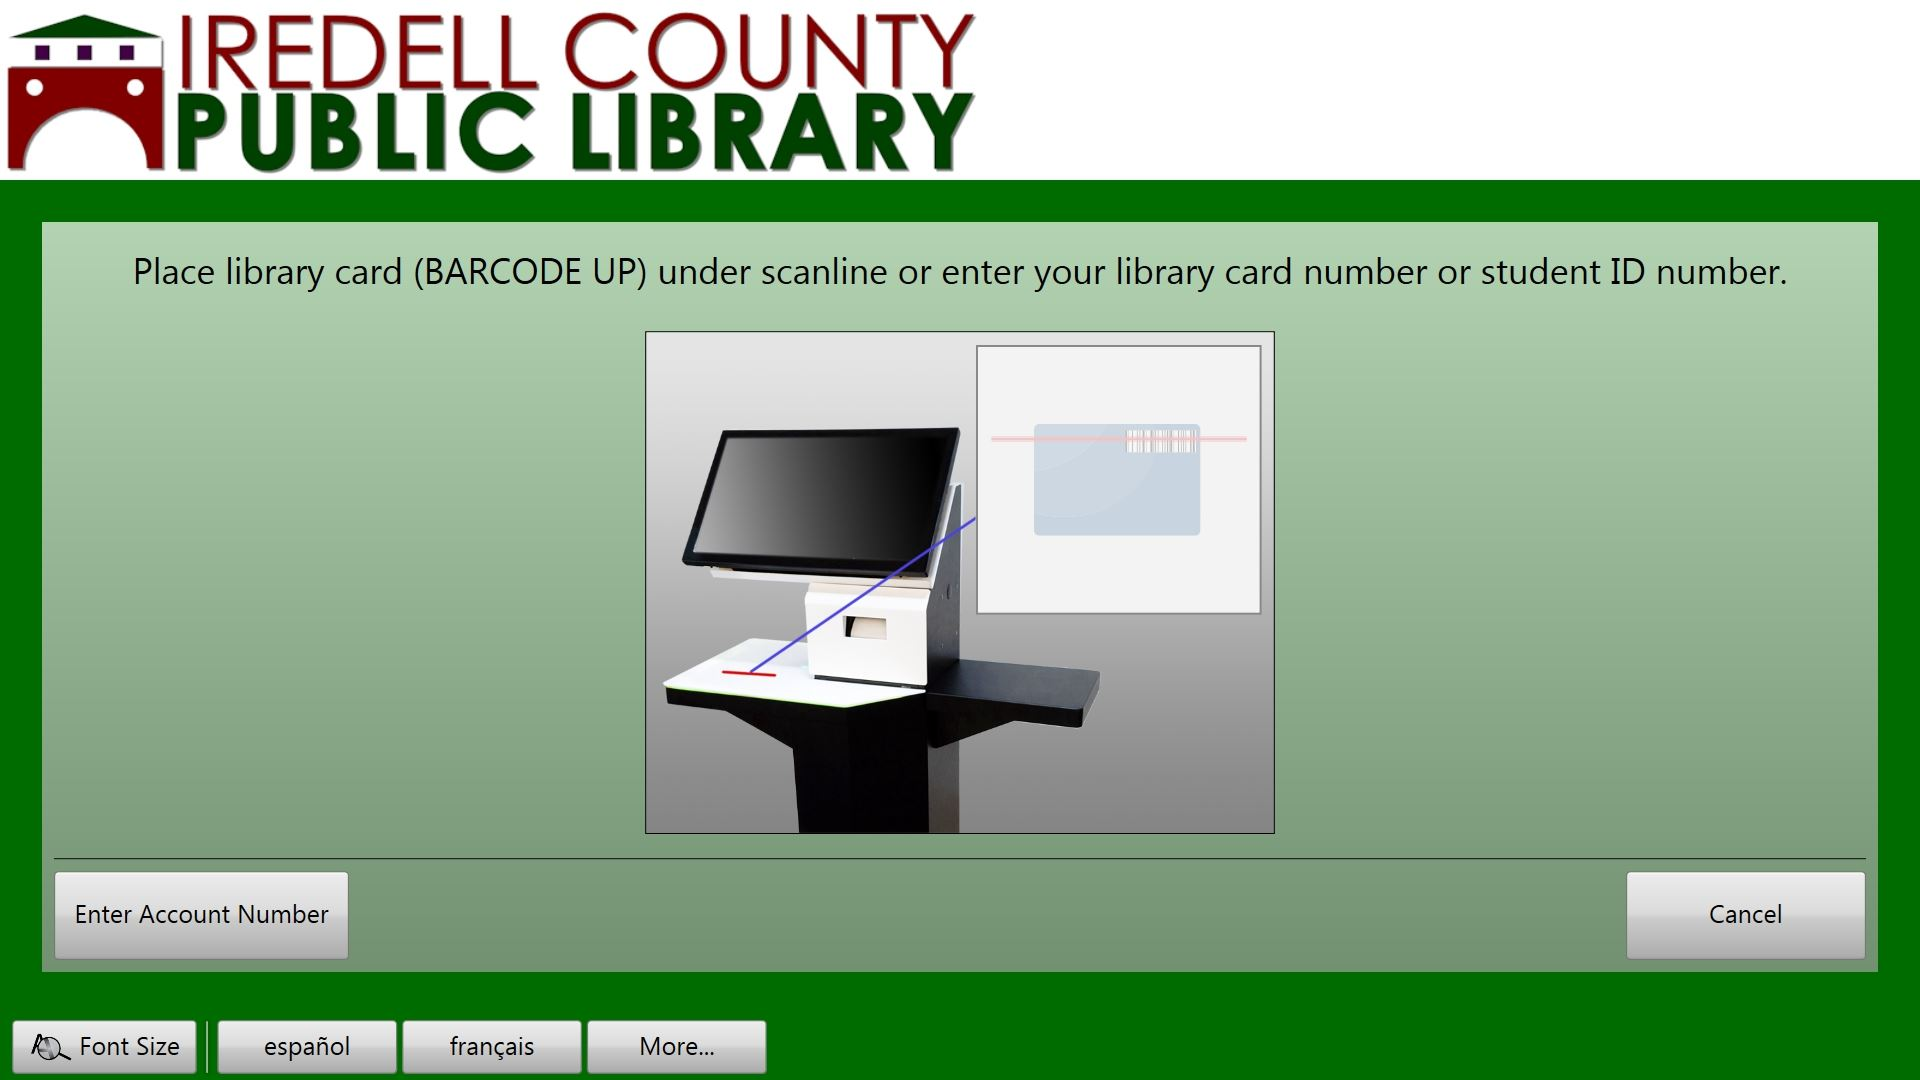 Place library card